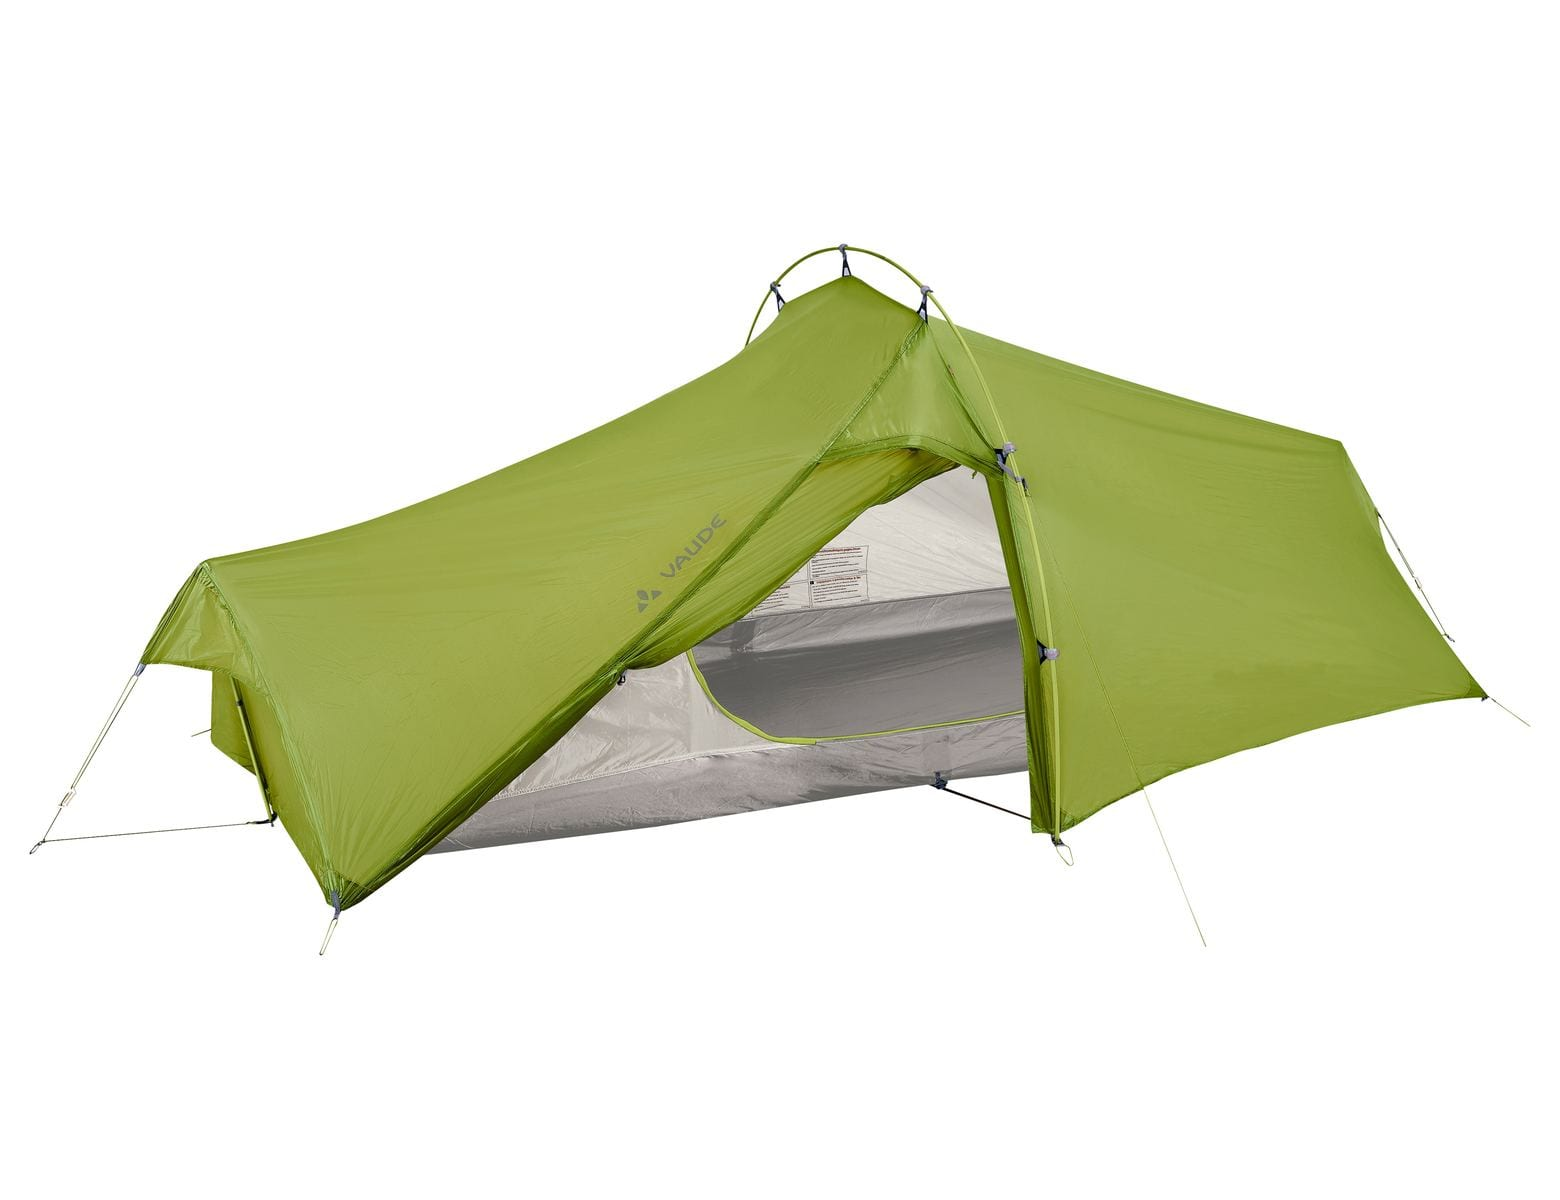 Vaude Power Lizard SUL 2-3P cress green för camping & uteliv.